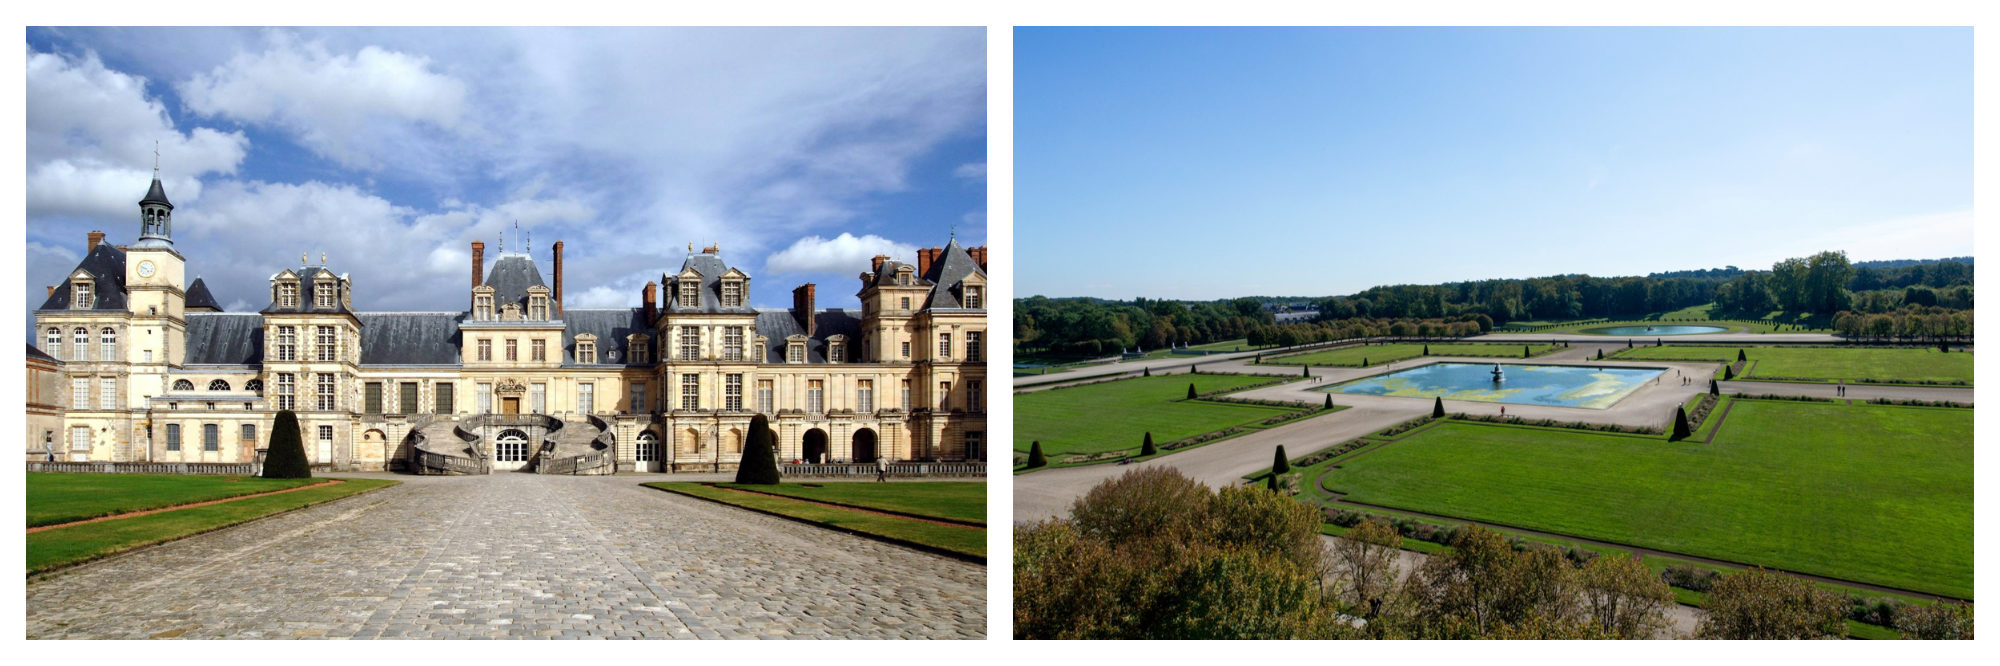 The Chateau de Fontainbleau with its creamy stone and grey roof (left) and its park with numerous water features (right).